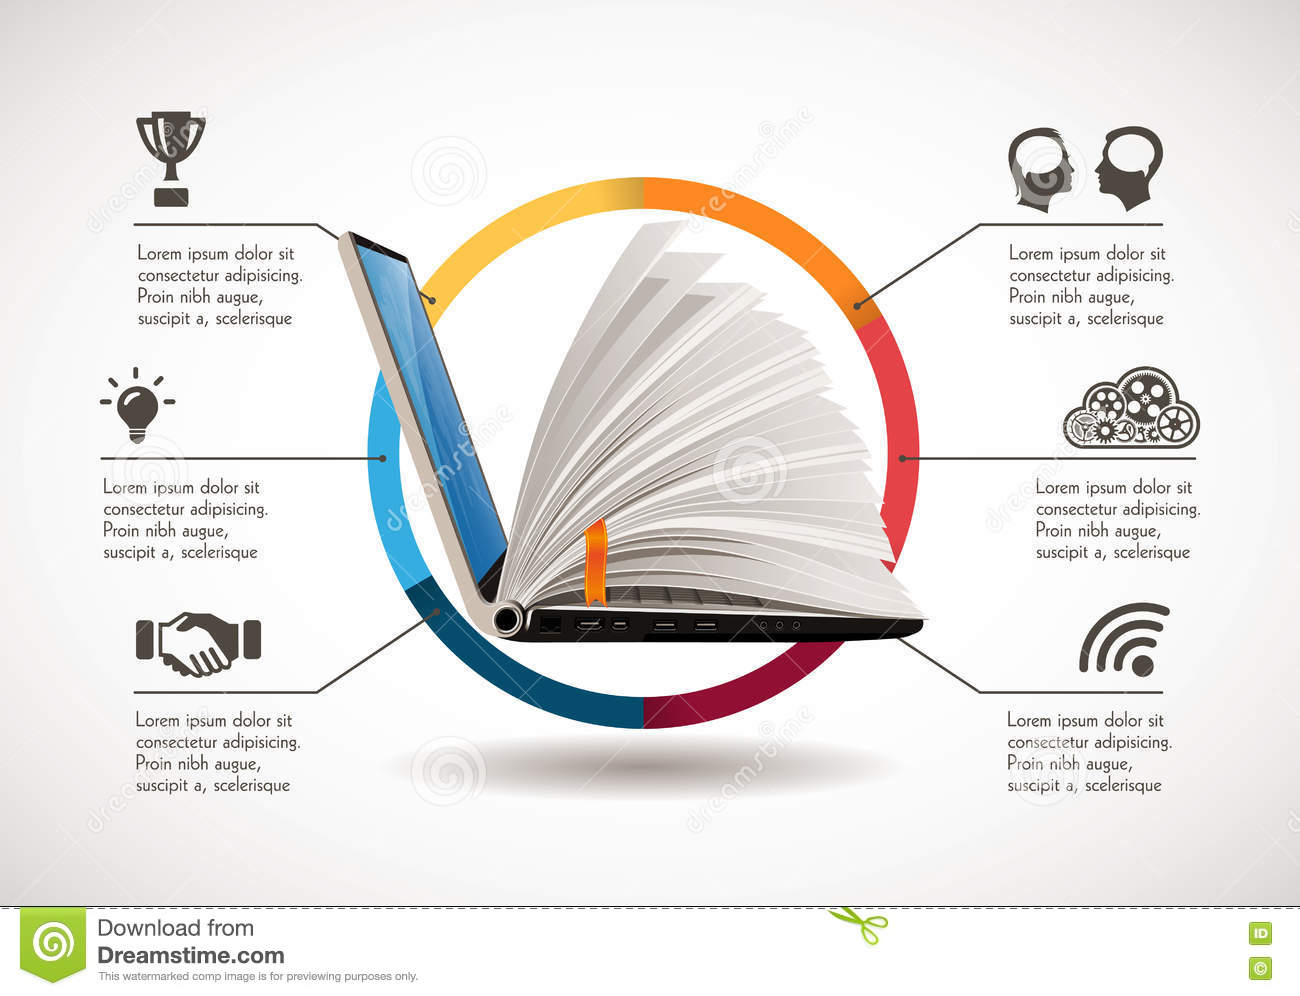 Elearning concept - online learning system